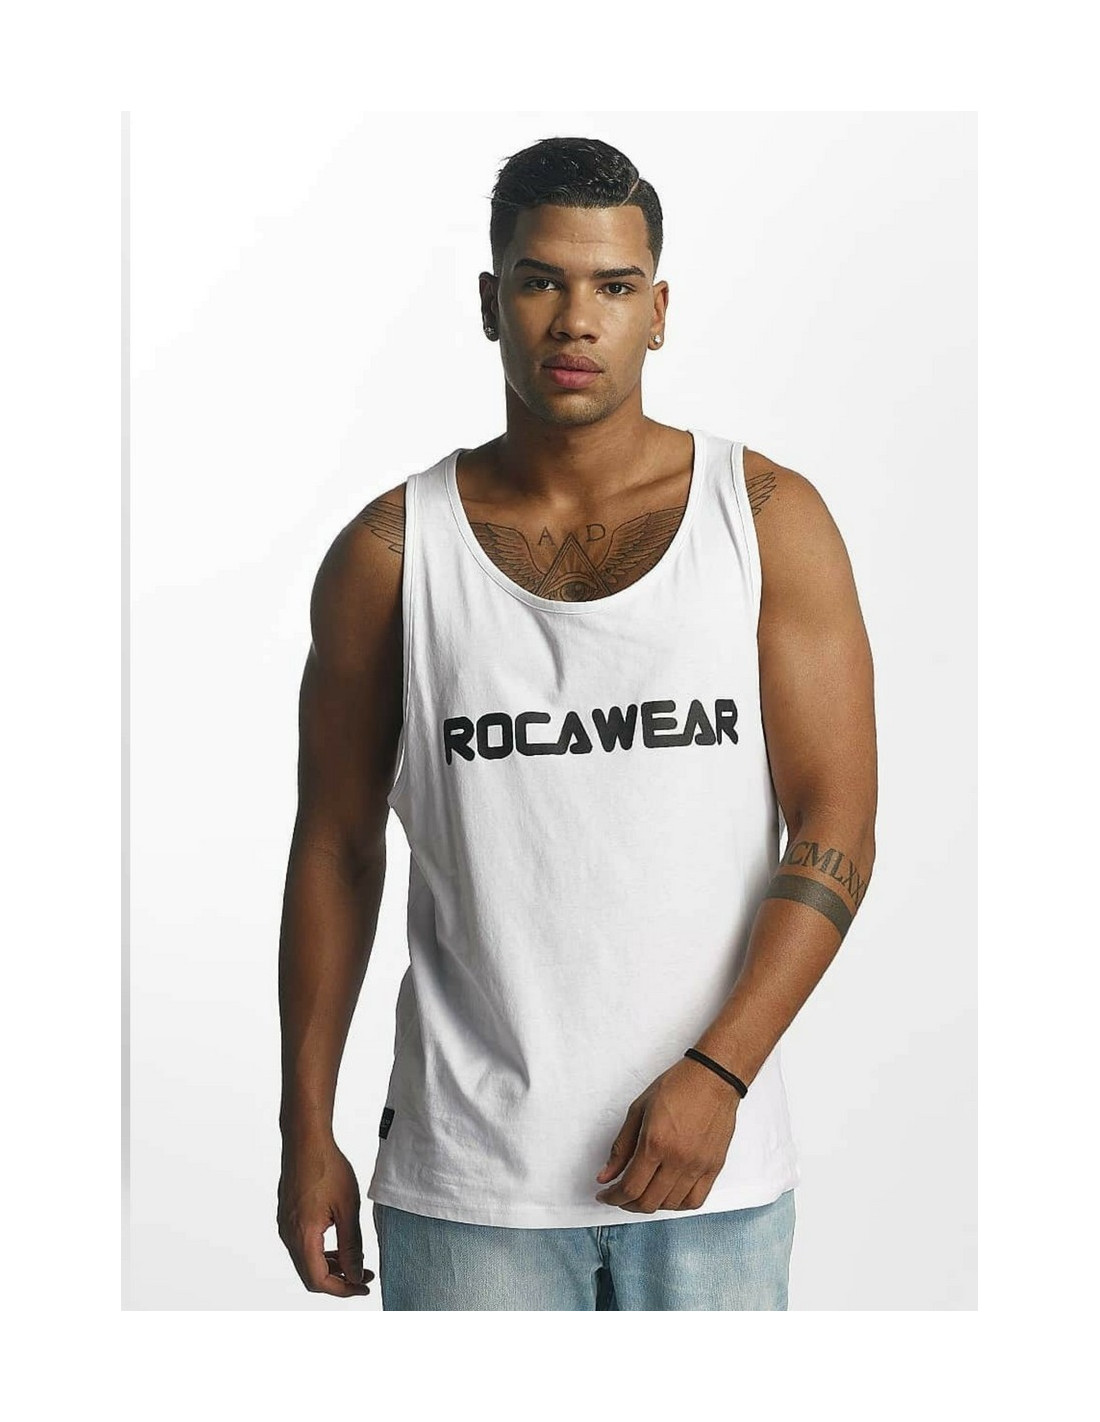 Rocawear Tank Top Color Block White